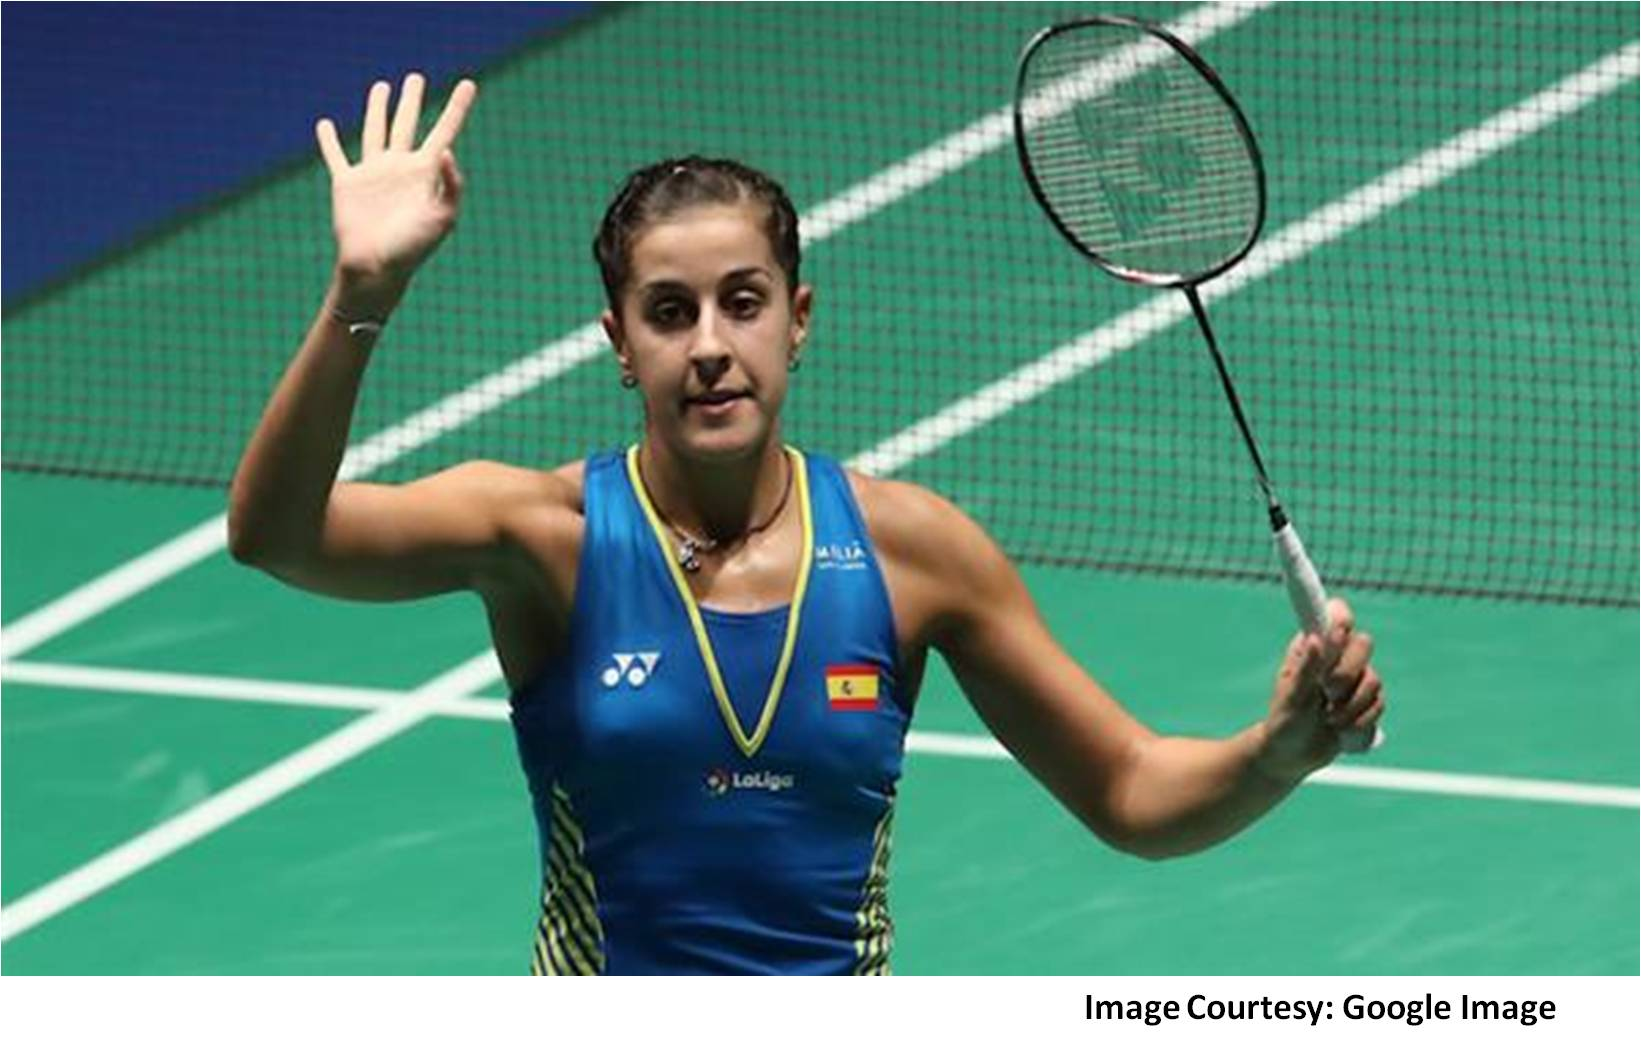 Carolina_Marin_Best_Badminton_Player